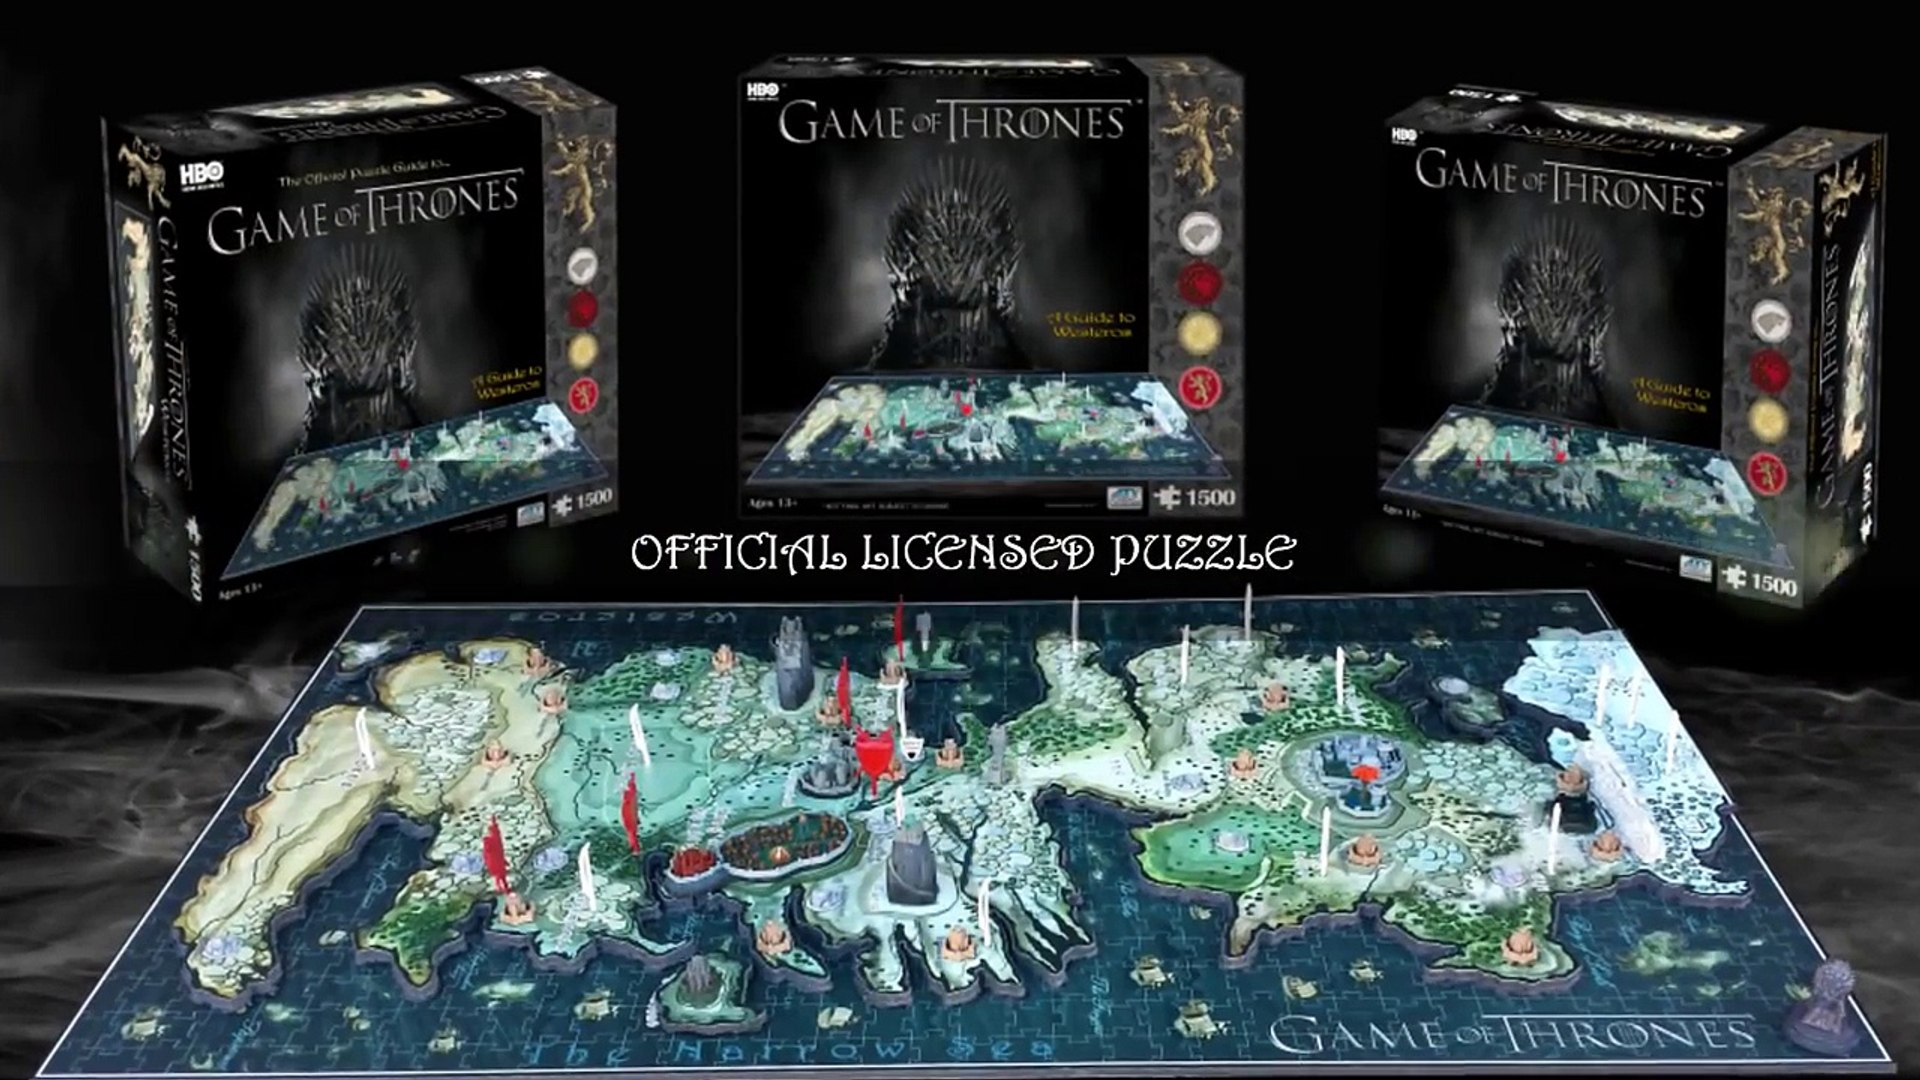 4D Game of Thrones Puzzle - Westeros 1000+ Jigsaw Puzzle Game Of Thrones D Map Westeros Puzzle on detailed map of westeros game of thrones, crown lands map game of thrones, google map game of thrones,